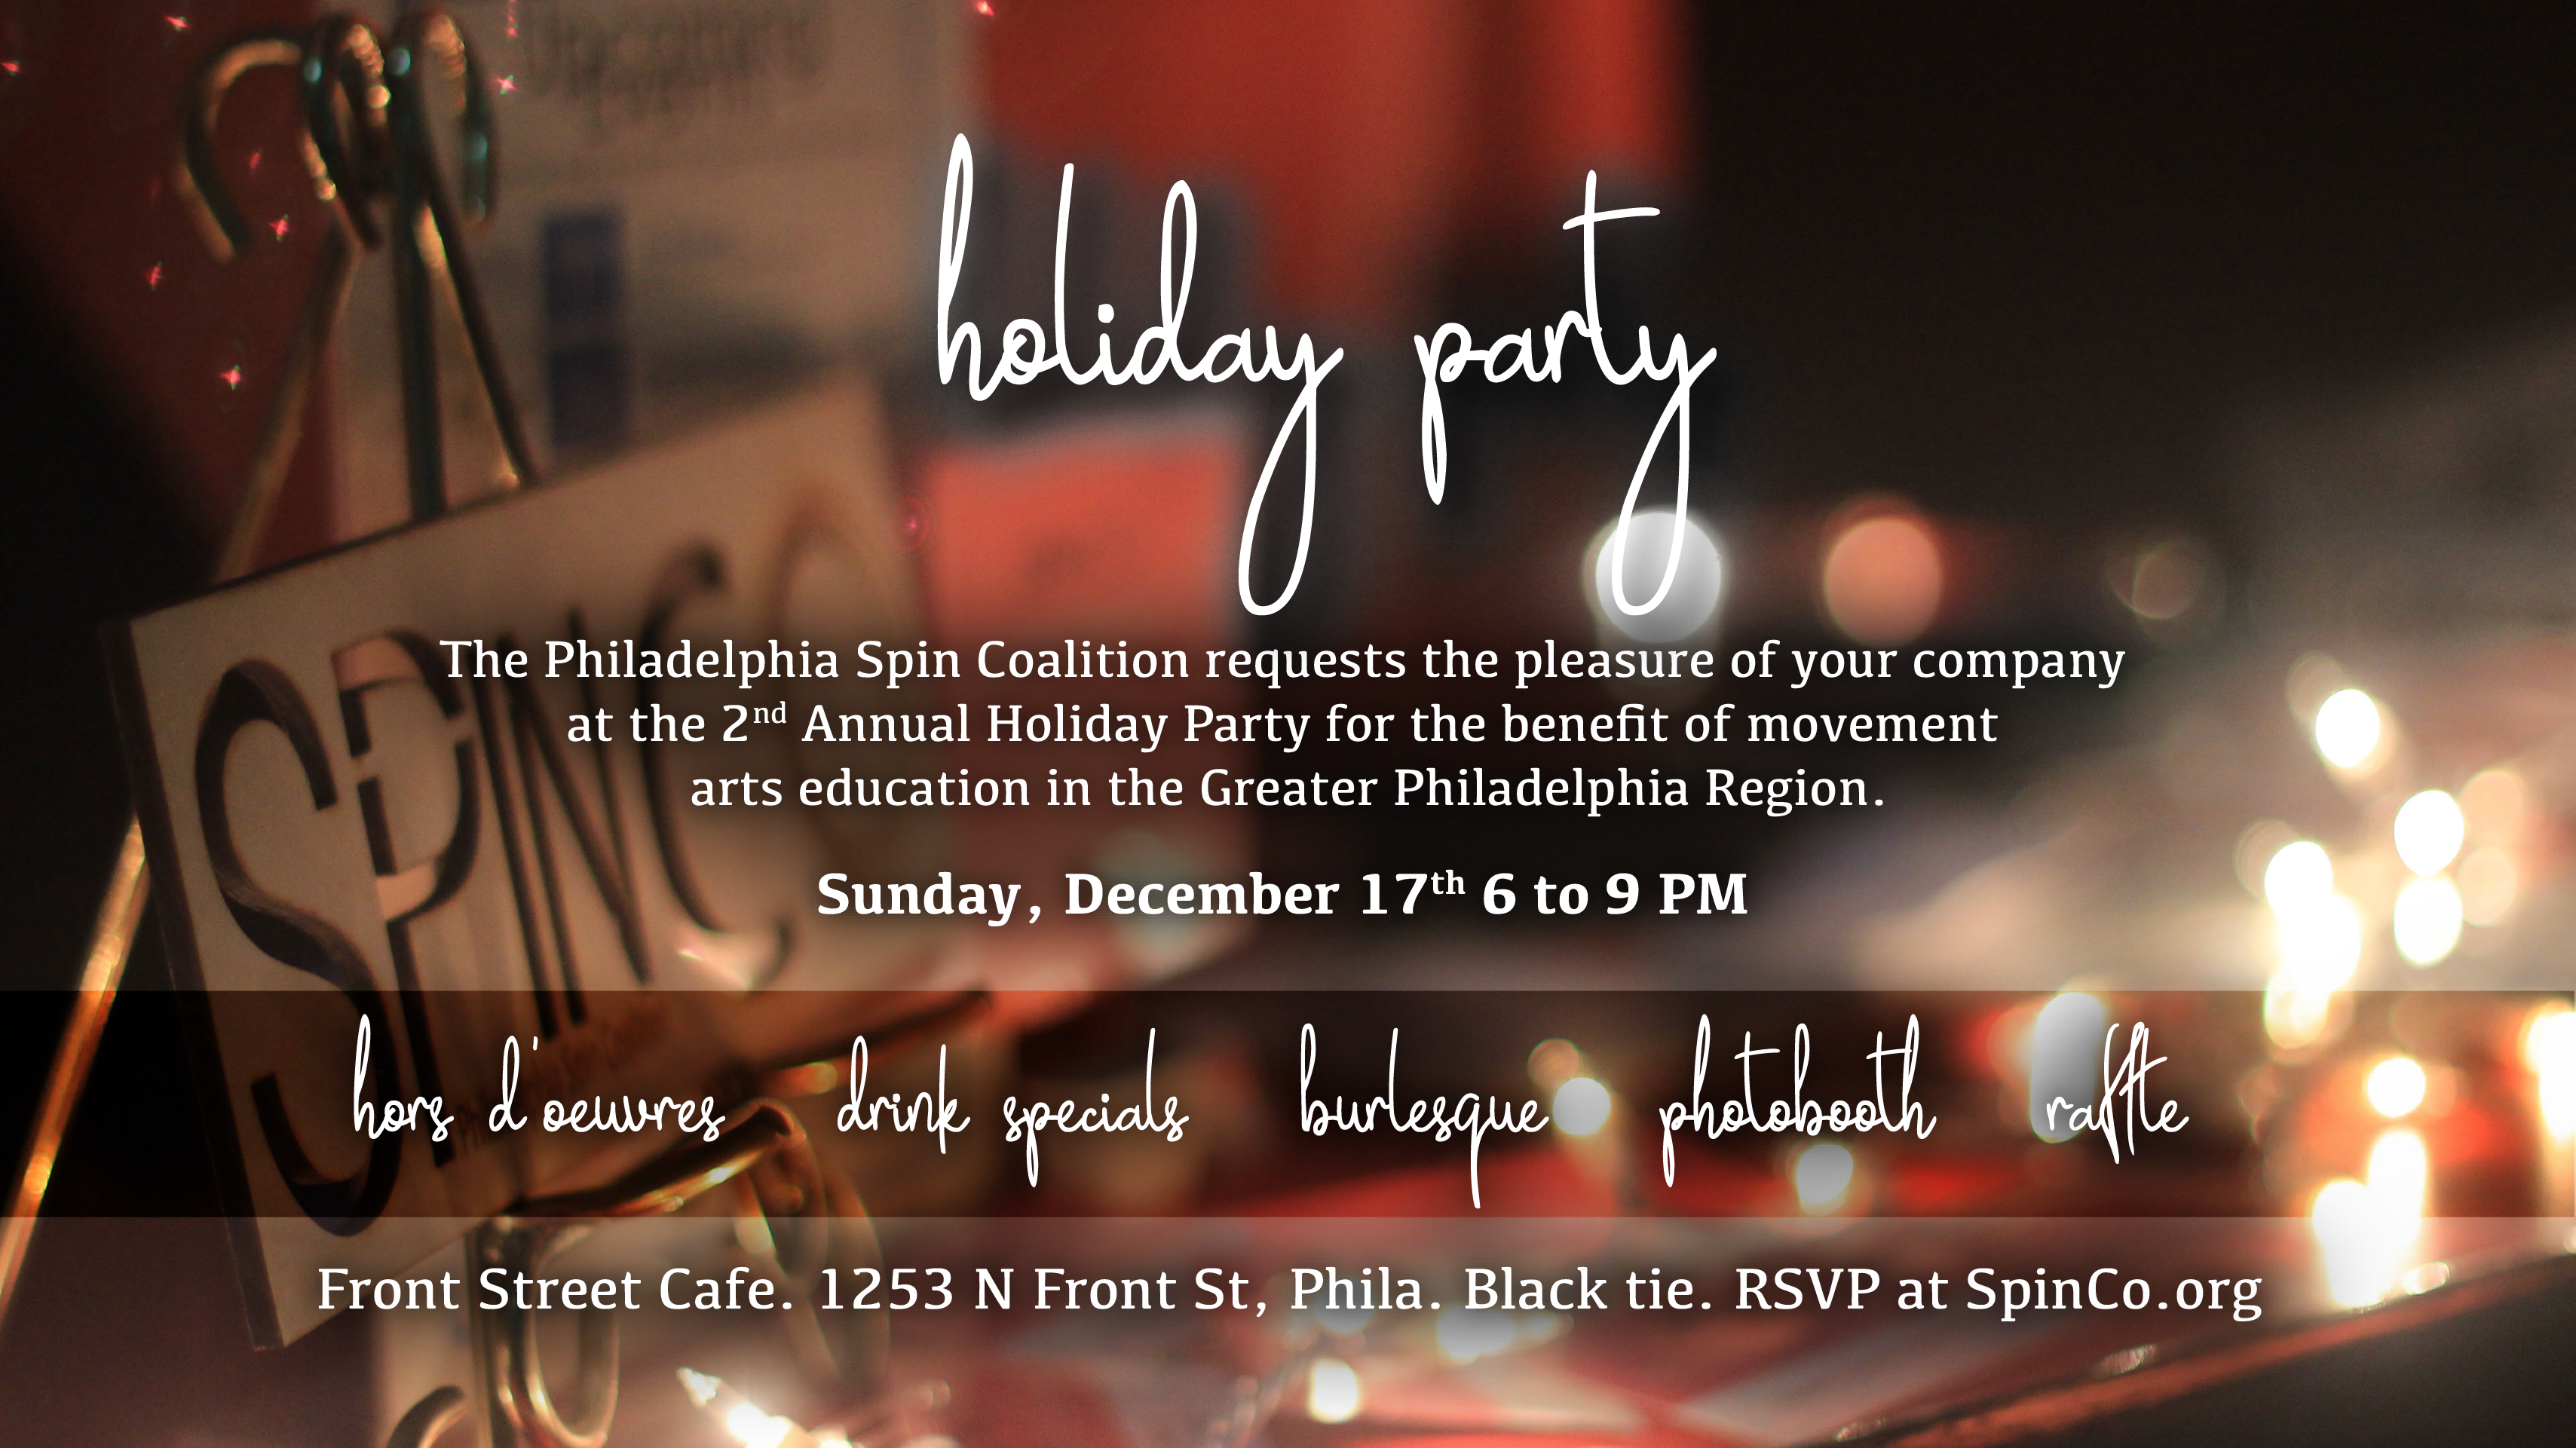 Fb Cover Invite Spin Co Holiday Party 2017 01